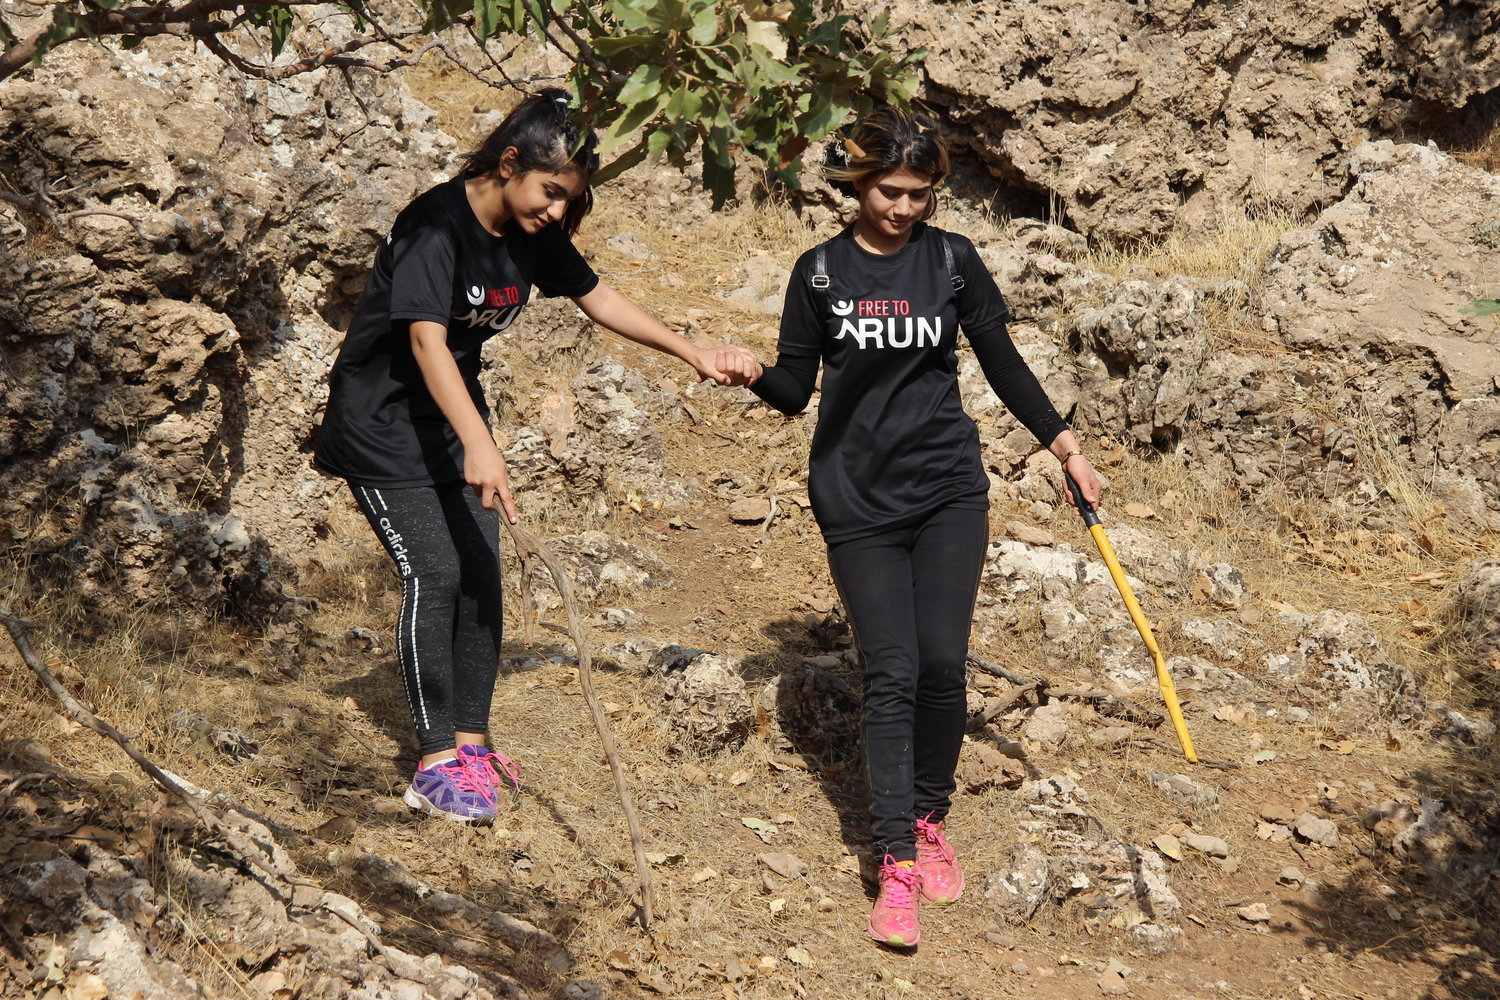 Iraq - Our 2019 plans include using adventure sports to empower and educate at least 100 internally displaced, refugee and host women and girls from multiple communities. Despite the obstacles that different religions, languages and challenging life situations present… we already have an exceptionally enthusiastic team emerging in Erbil. We see significant potential for Free to Run programs in Iraq and thanks to the support of local partners, we're rapidly expanding our activities.External monitoring and evaluation for Iraq reveals participants report a 30% increase in volunteerism, 35% increases in leadership in projects at school and 59% increase in participants taking the lead on projects at home. Benefits of the program go beyond leadership in the community, but extend to their personal lives as well with a 52% increase in personal goal setting, and reductions in feelings of stress or helplessness. The opportunity to meet other young women from provinces outside of their own sees a 47% increase on average.